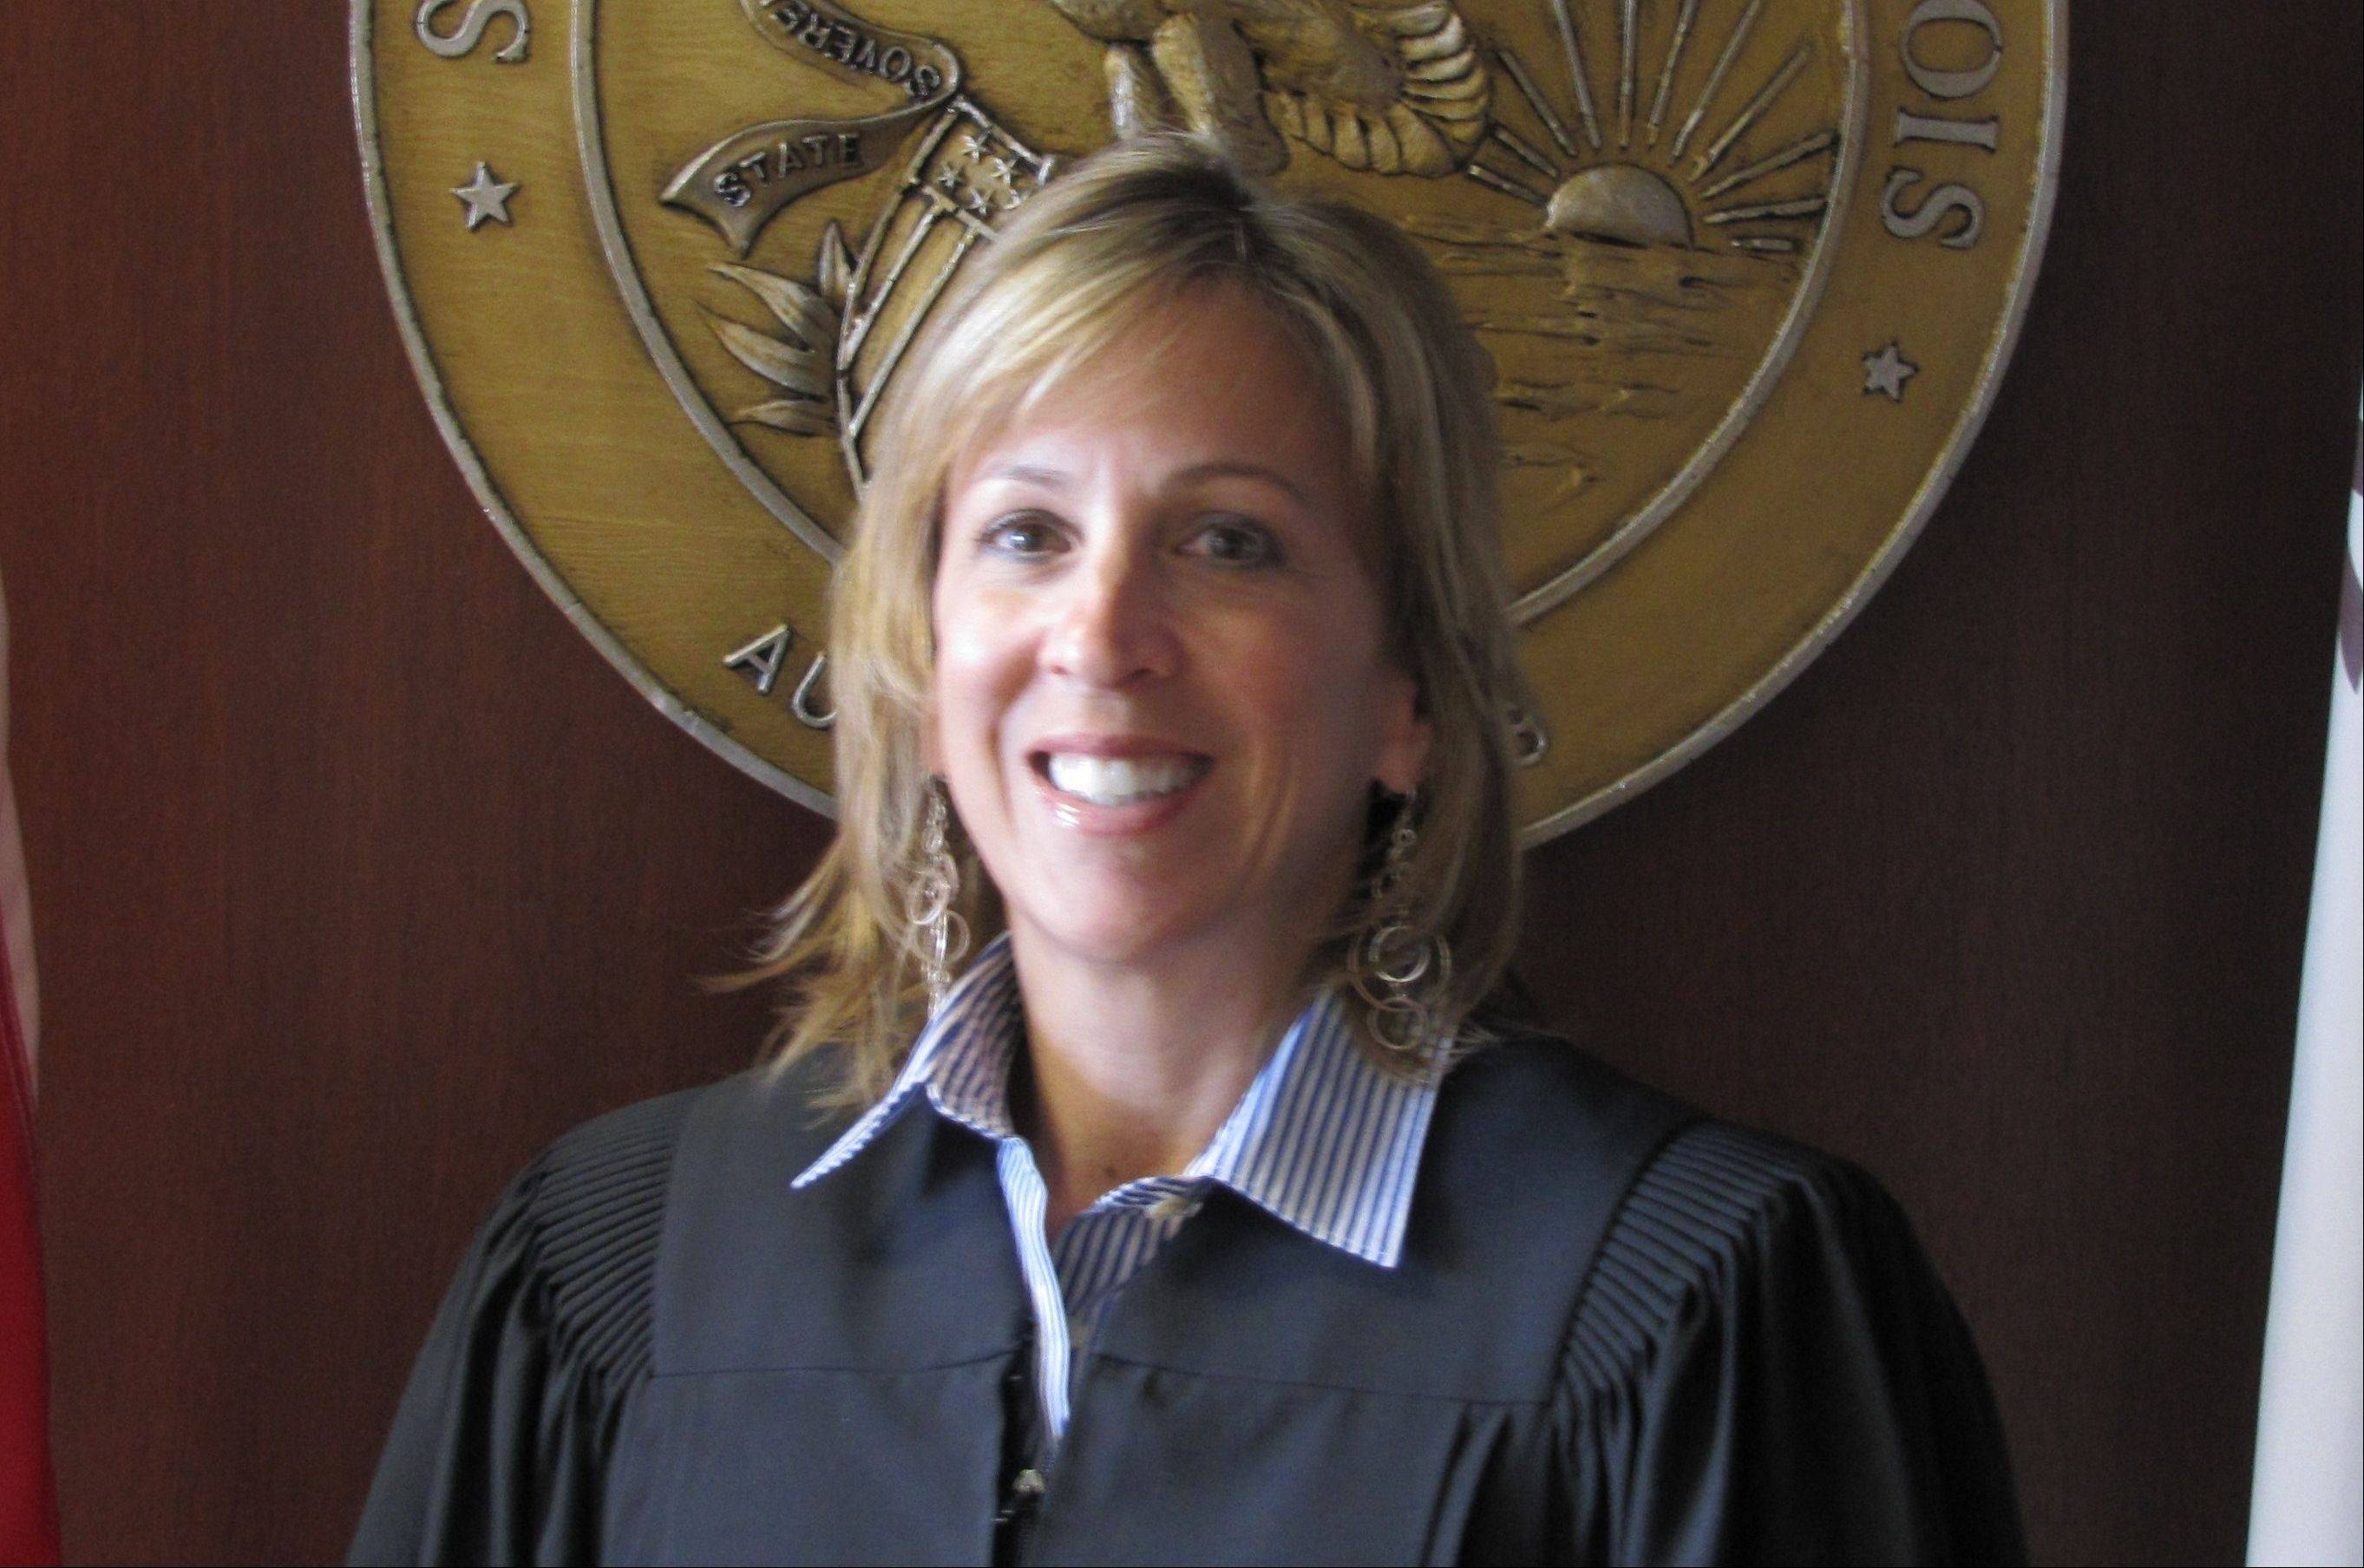 Judge Kay Hanlon